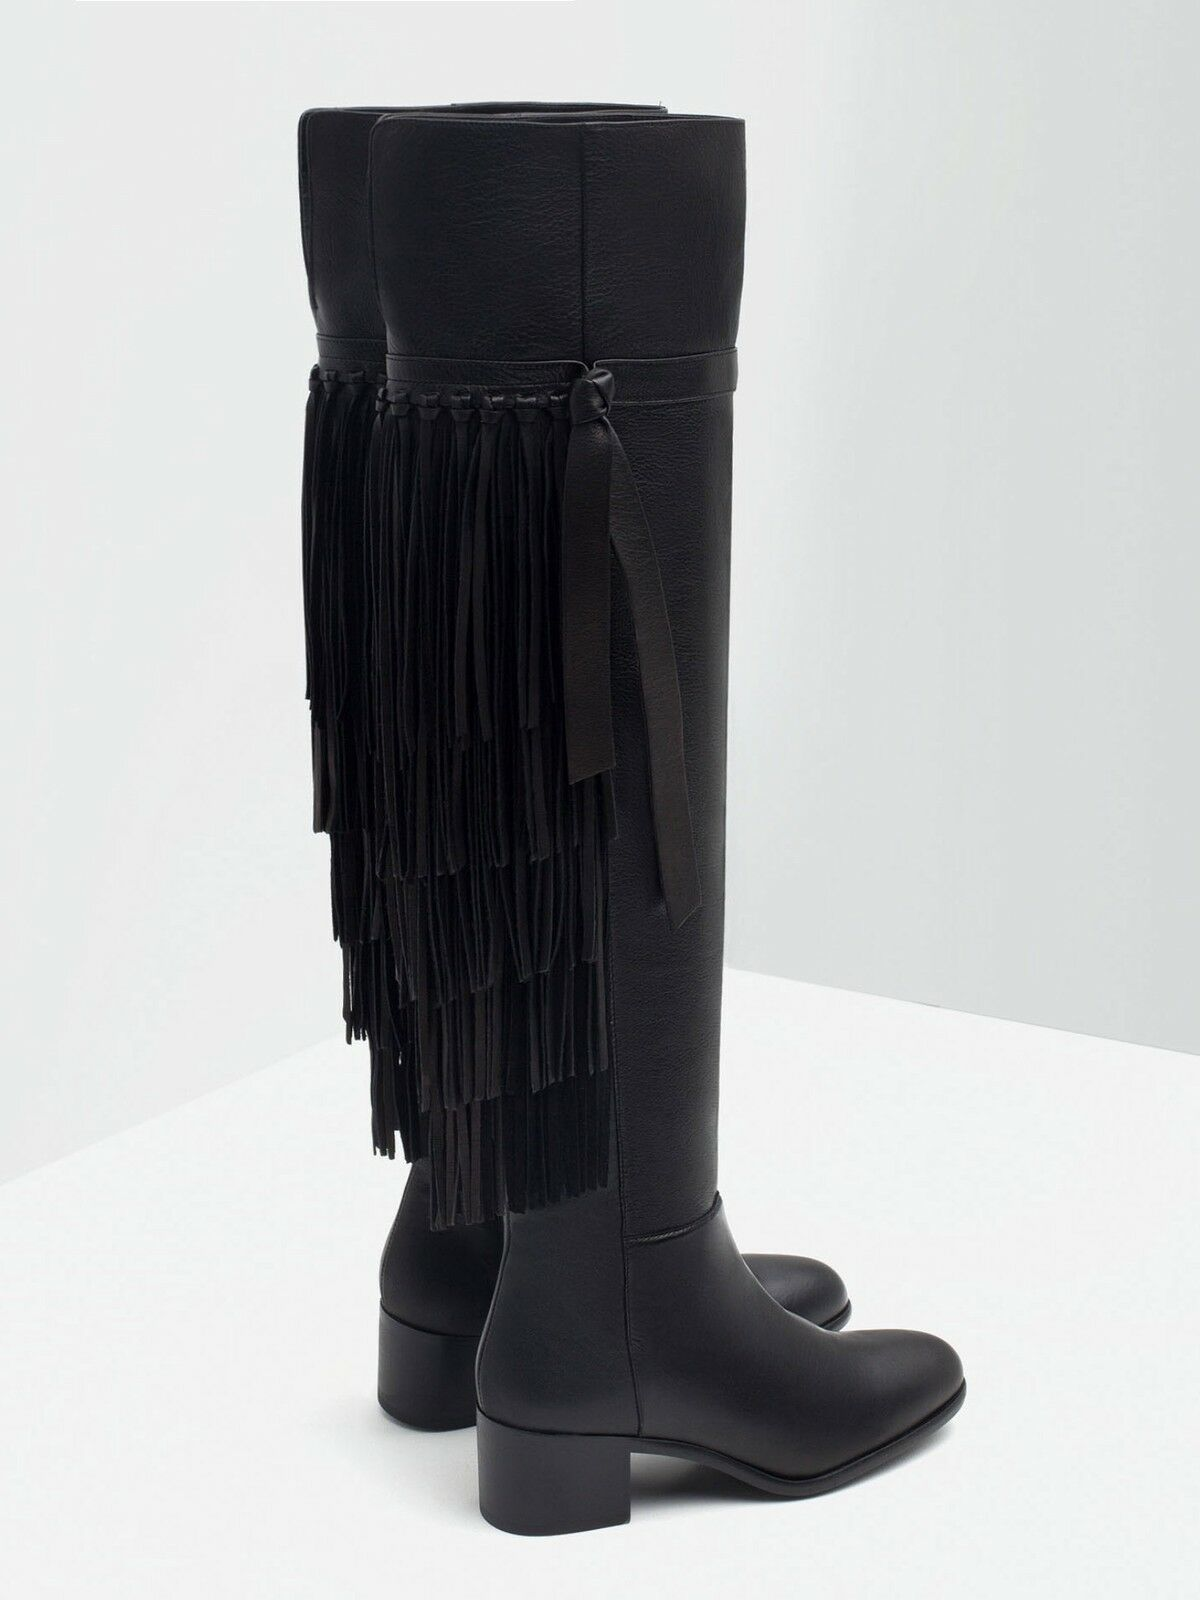 ZARA XL OVER THE KNEE FLAT LEATHER BOOTS WITH FRINGE BLACK ALL SIZES 6066/001